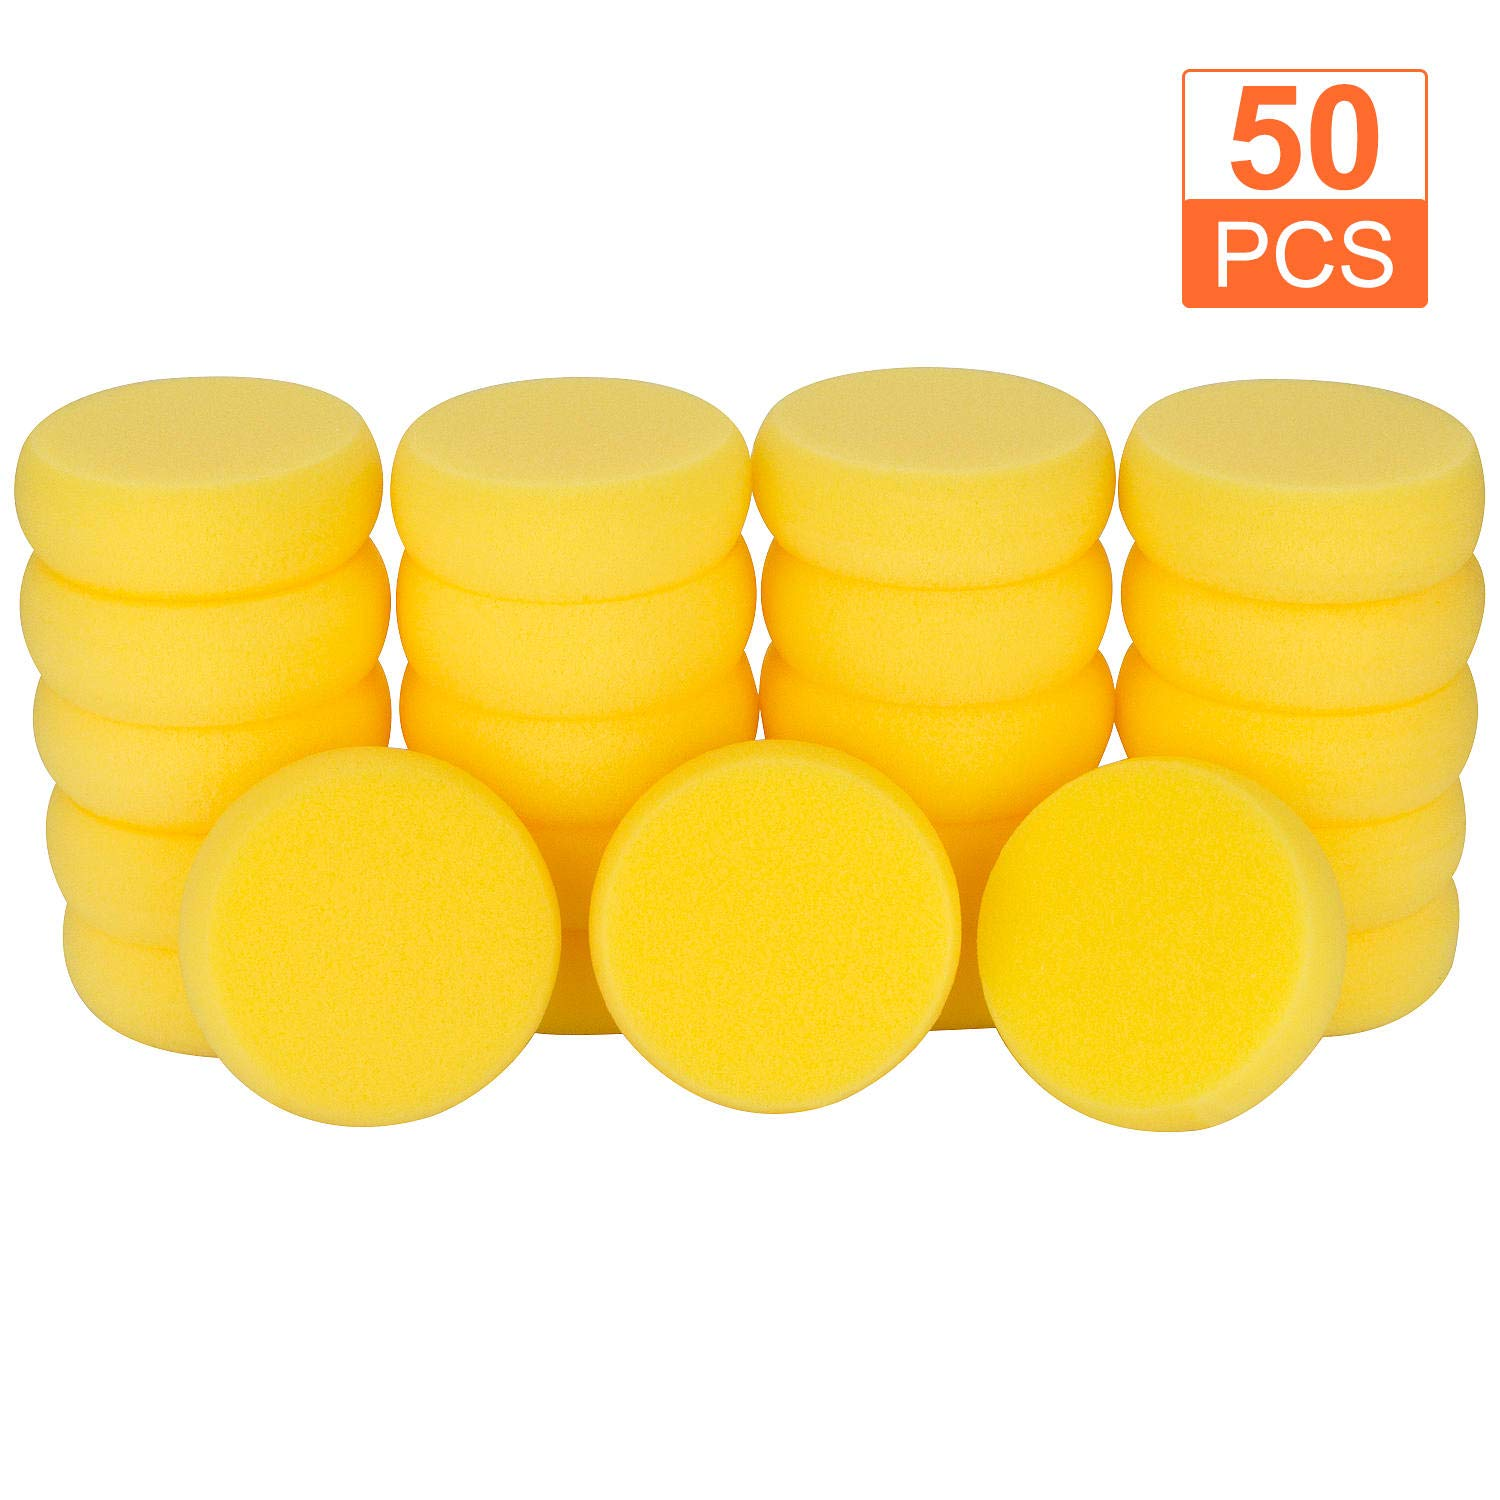 50Pcs of Synthetic Sponges, Round Watercolor Sponge for Artist Face Painting, Painting, Crafts, Pottery, Clay, Ceramics, Wall by Abuff